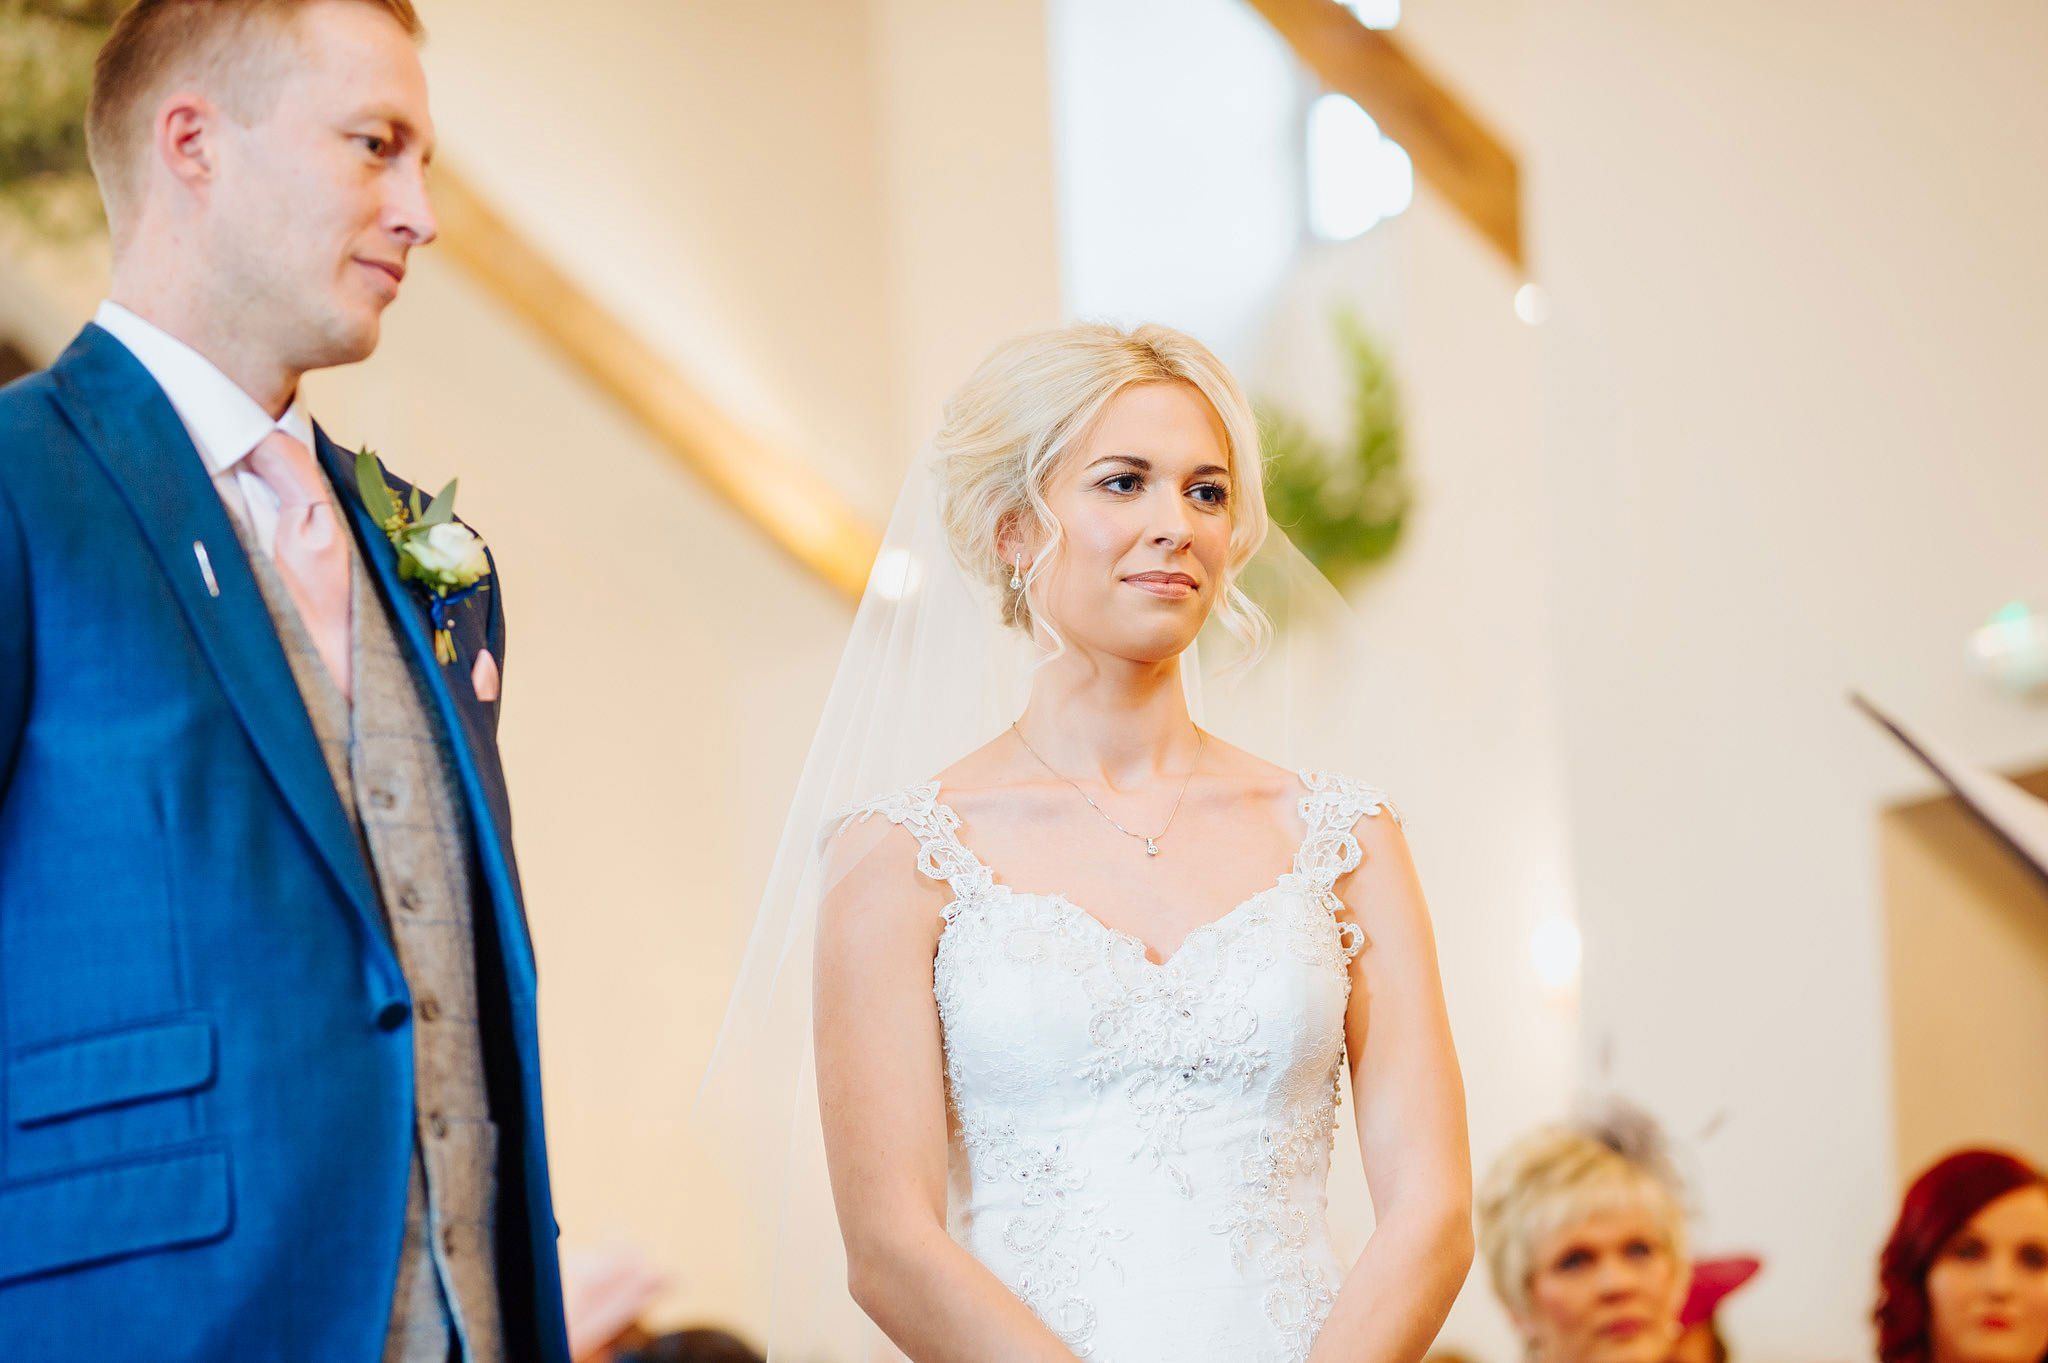 Sigma 85mm F1.4 ART review vs Wedding Photography 4